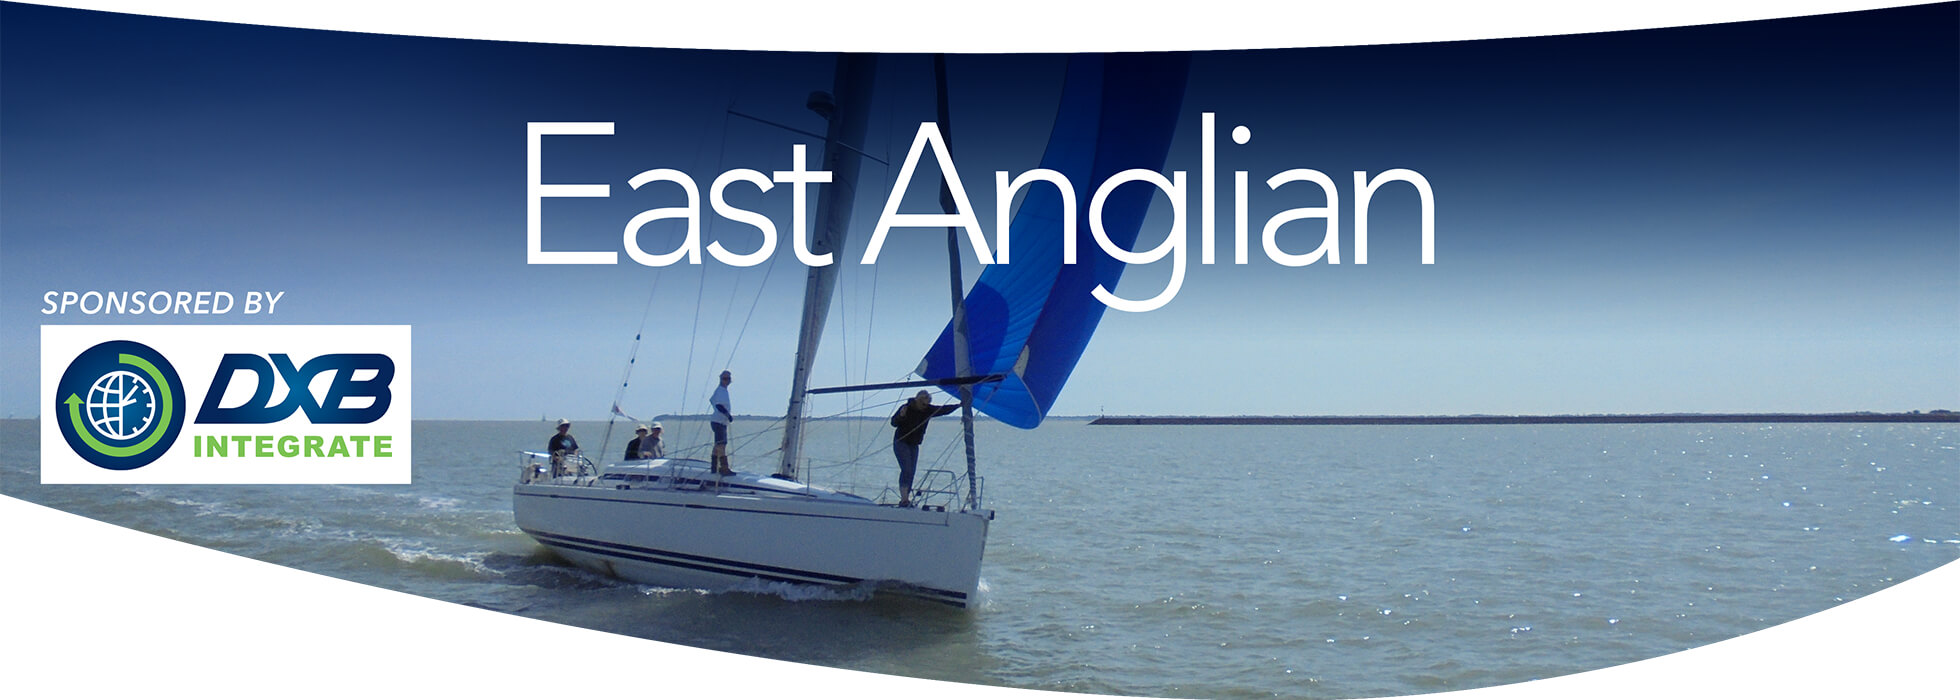 East Anglian Offshore Racing Association